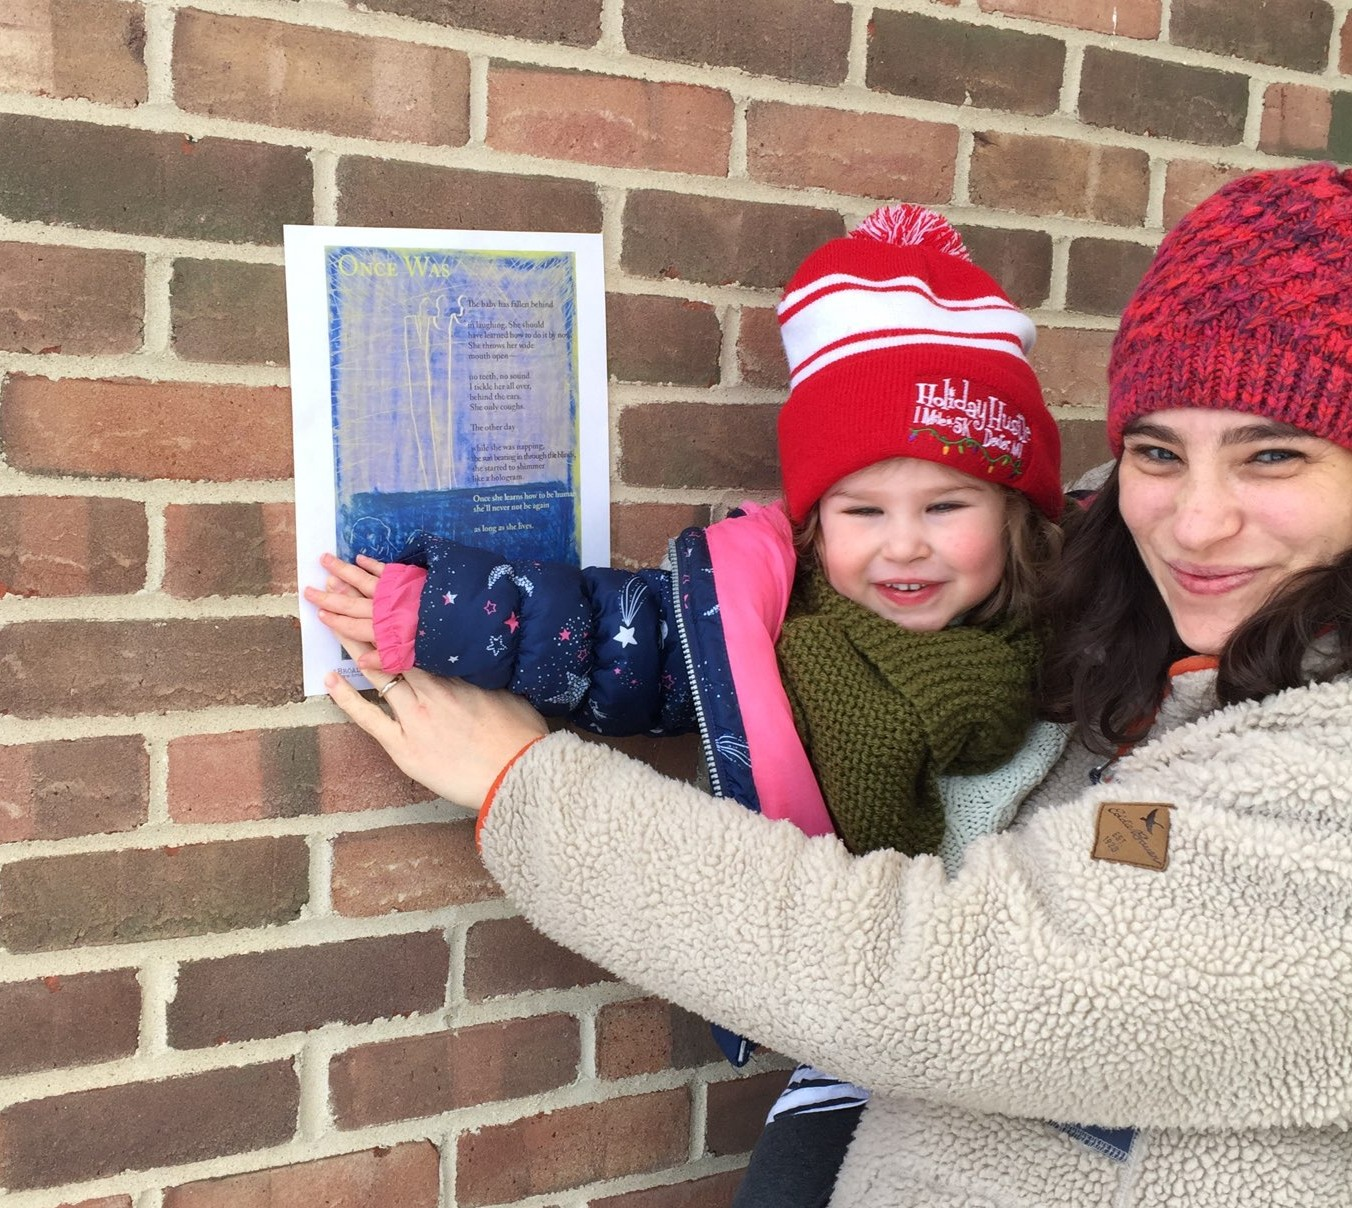 Poet Adina Schoem and her child, both in red hats, stand right of her broadside posted against a brick wall.